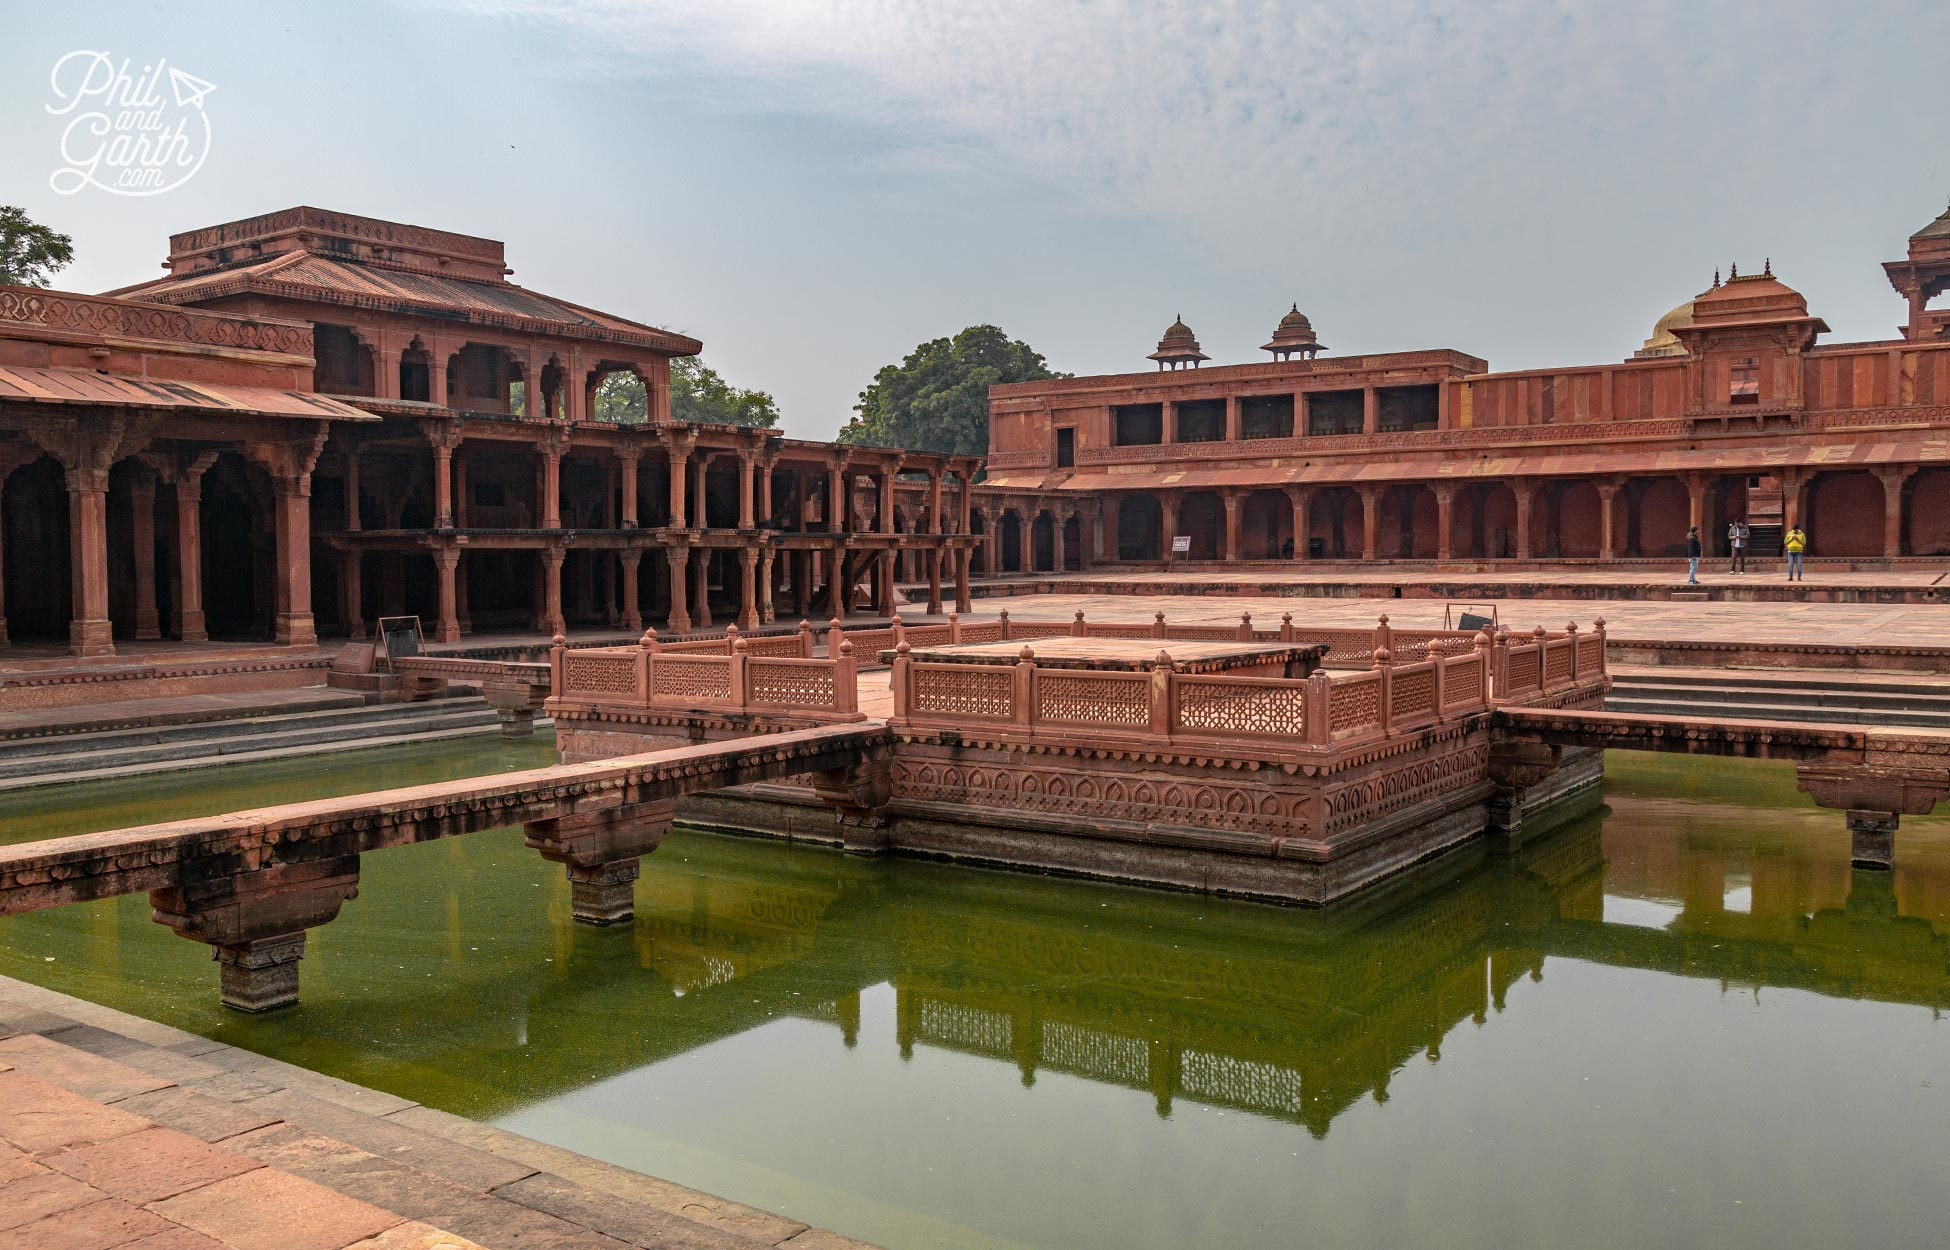 The abandoned Royal city of Fatehpur Sikri, which means 'The City of Victory'